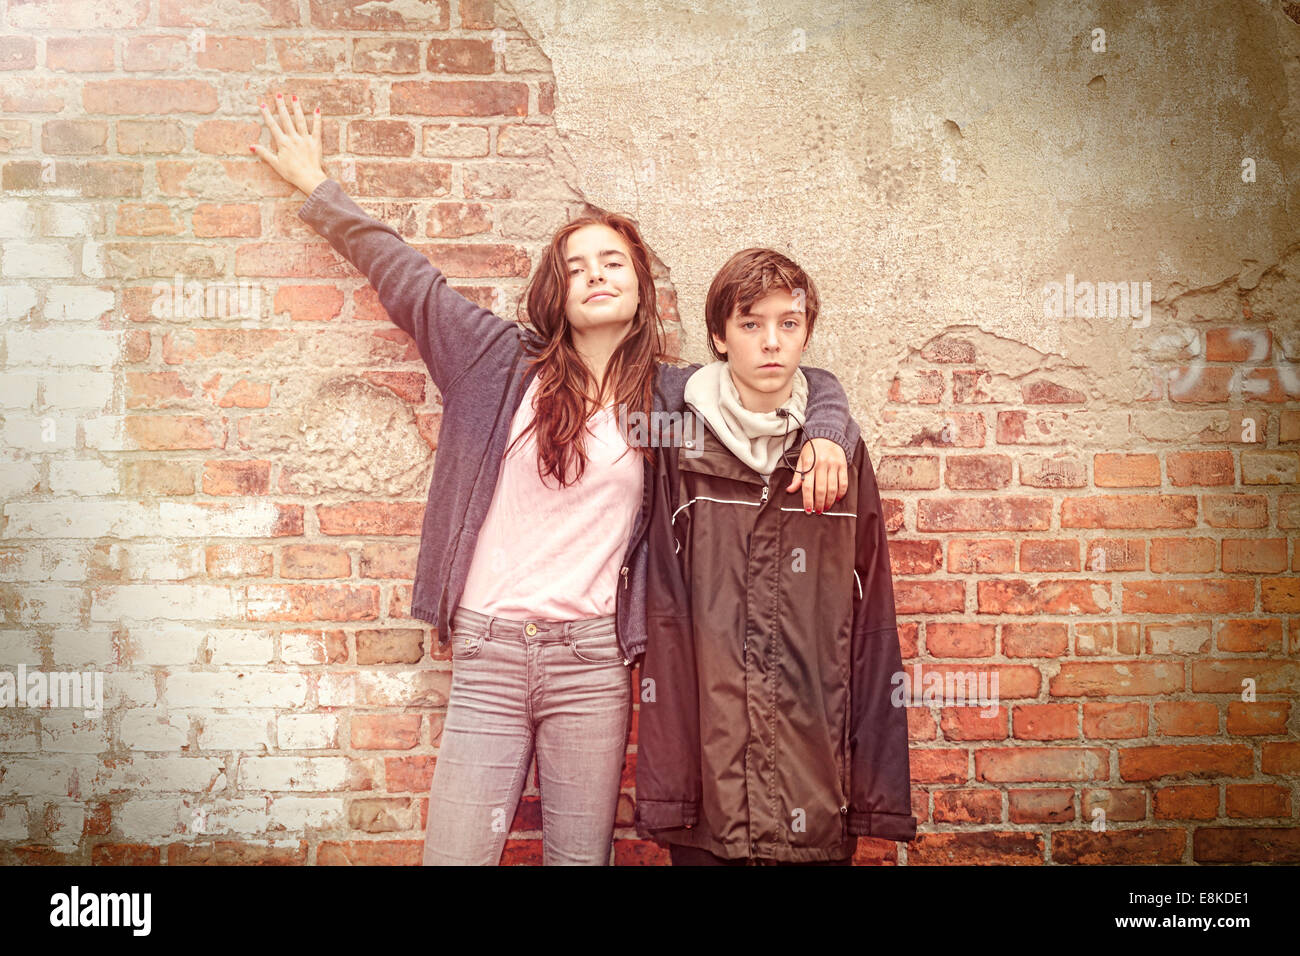 siblings in front of an old grungy brick wall - Stock Image